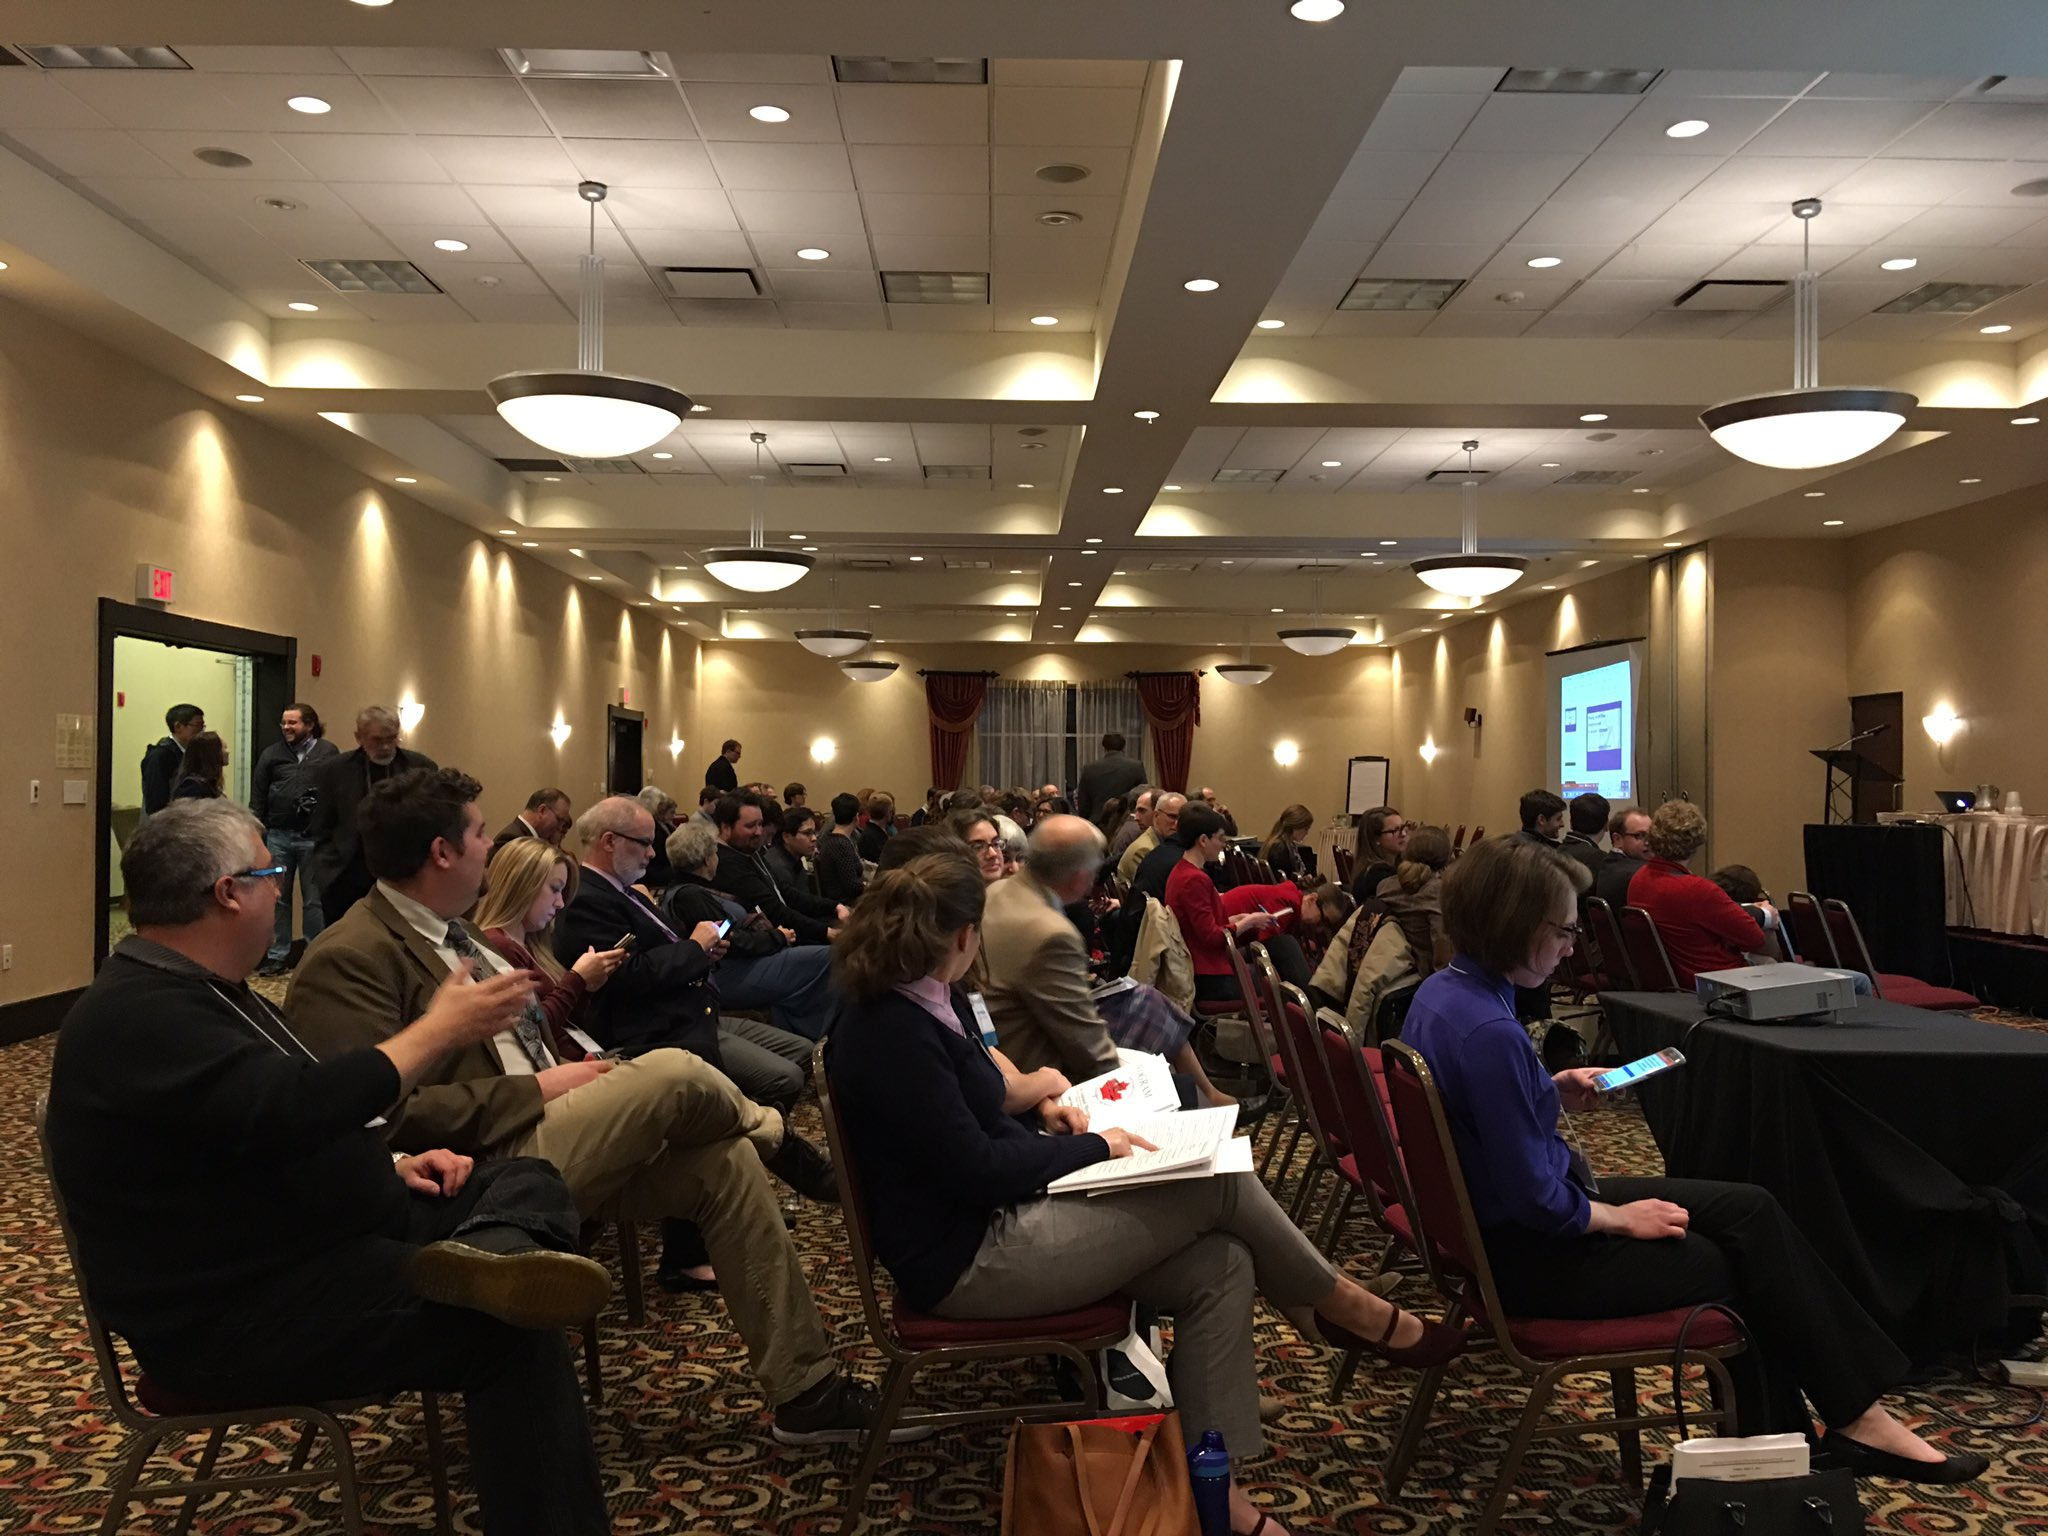 Packed house for tonight's plenary lecture by Peter Bing (UToronto), Playing with Time: Anachronism in Ancient Literature #CAMWS17 https://t.co/8zZWFA0FNw